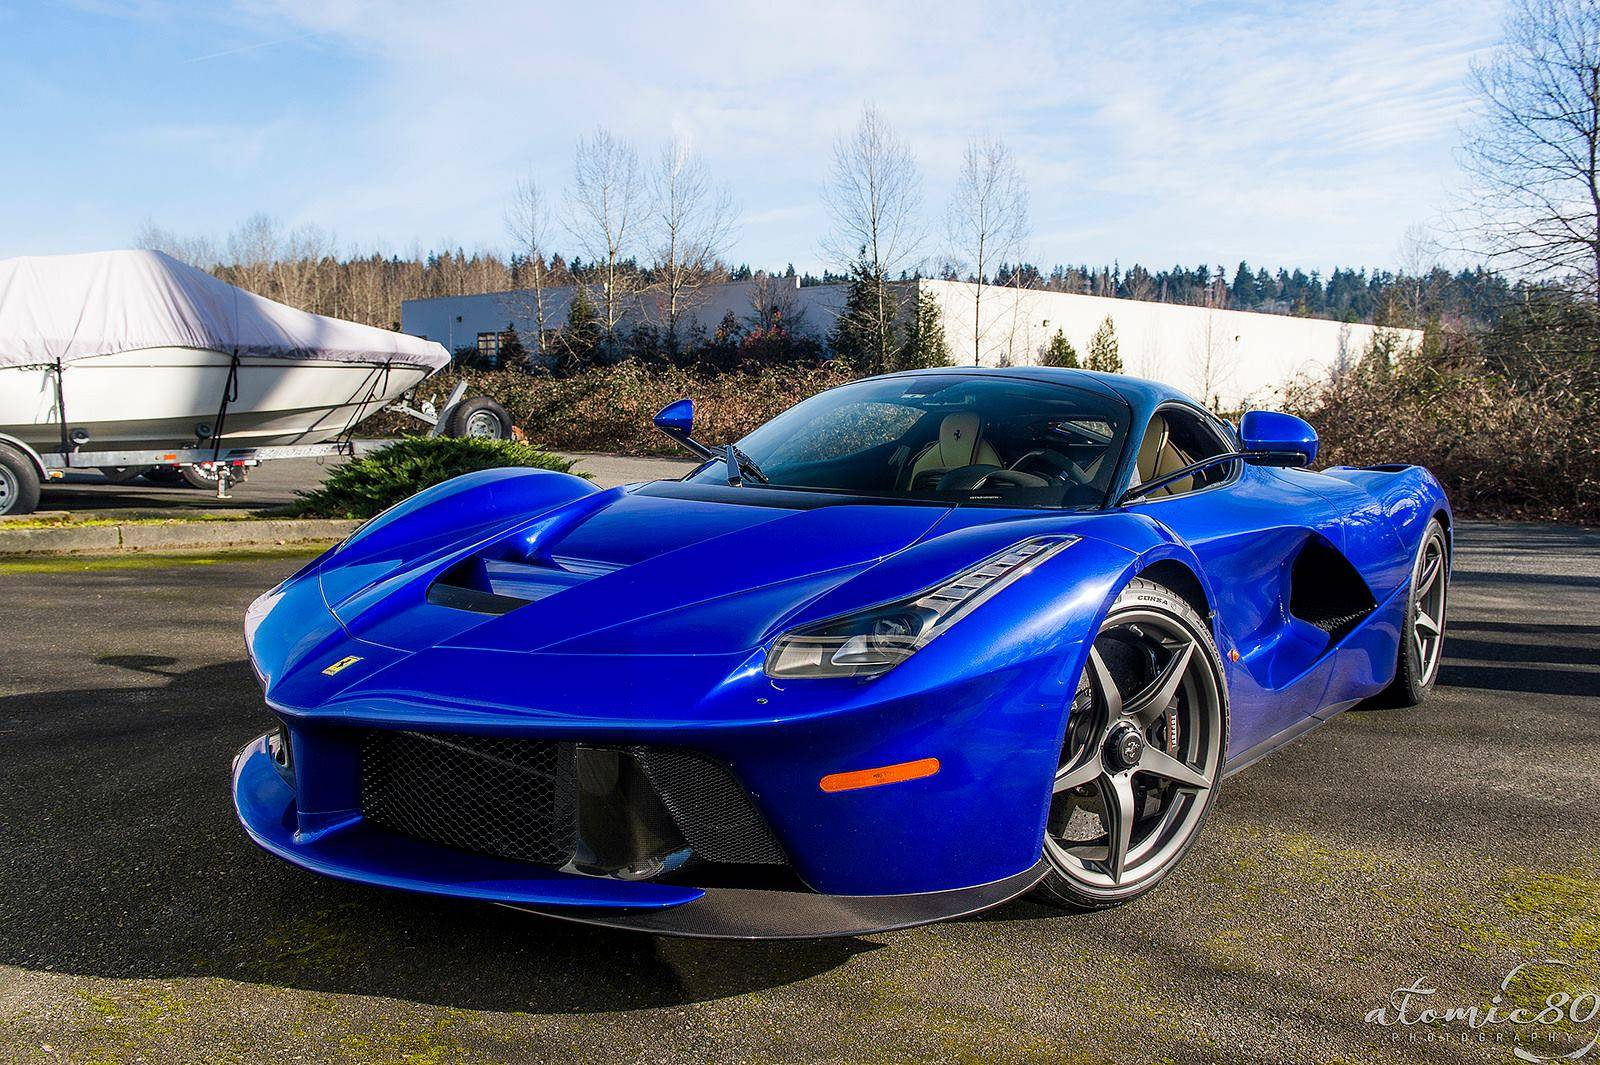 Stunning Blue Ferrari Laferrari In Washington Gtspirit